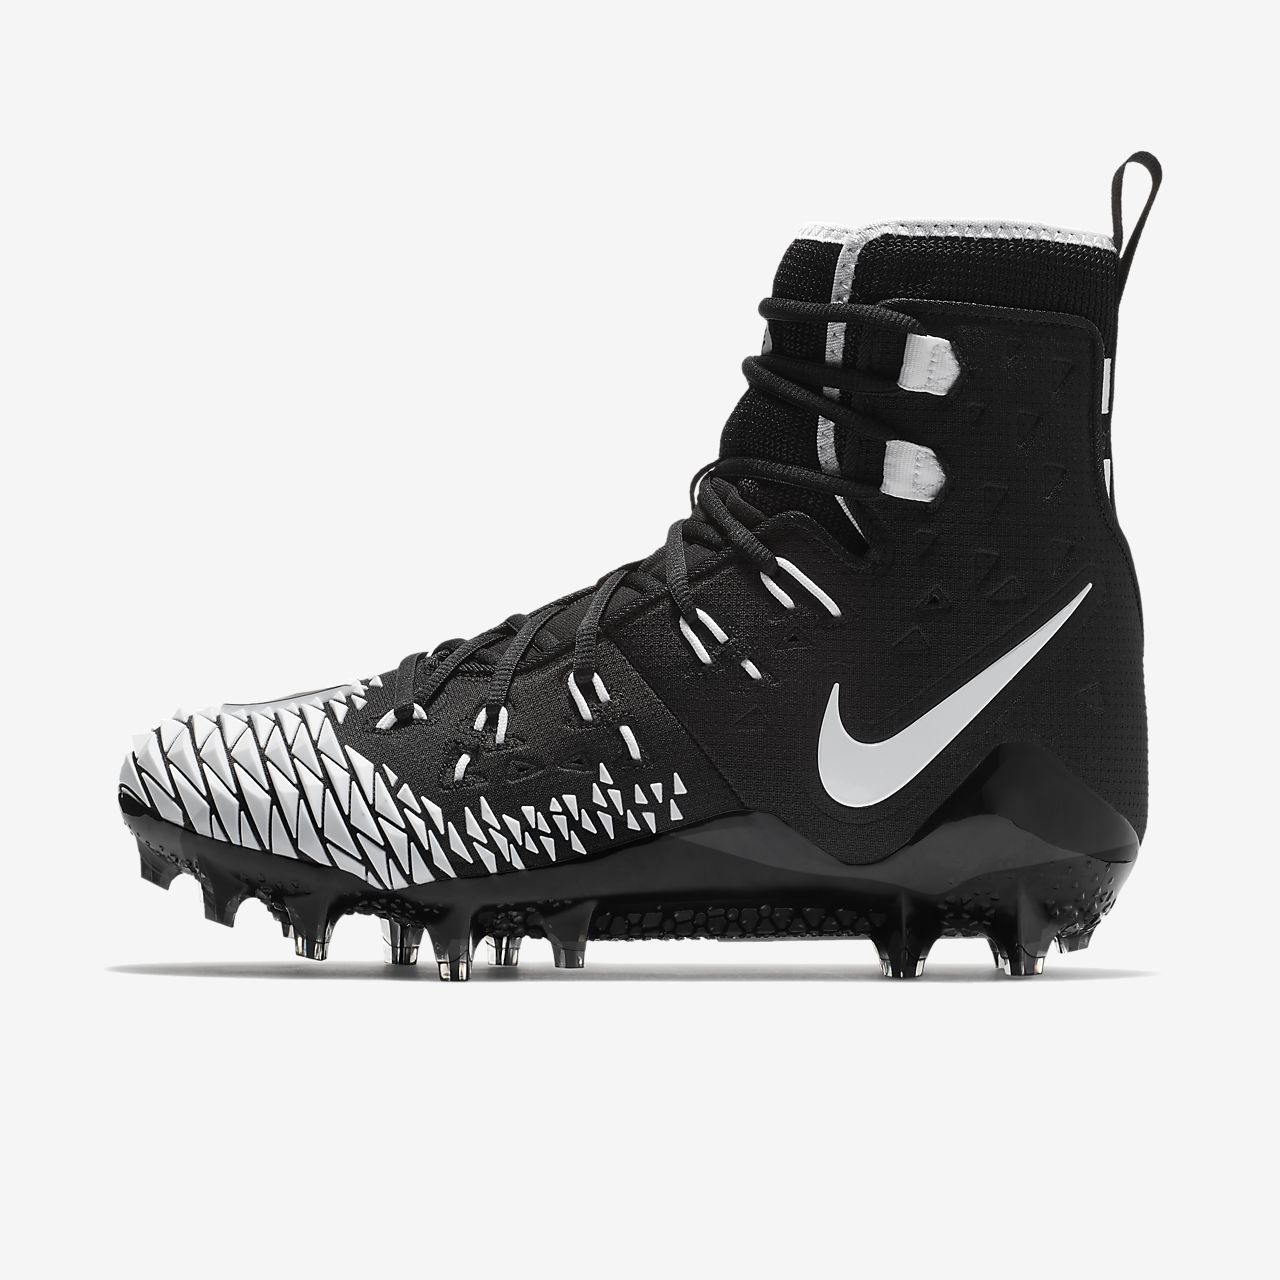 buy online 8fe1f 54ff3 ... Nike Force Savage Elite TD Mens Football Cleat